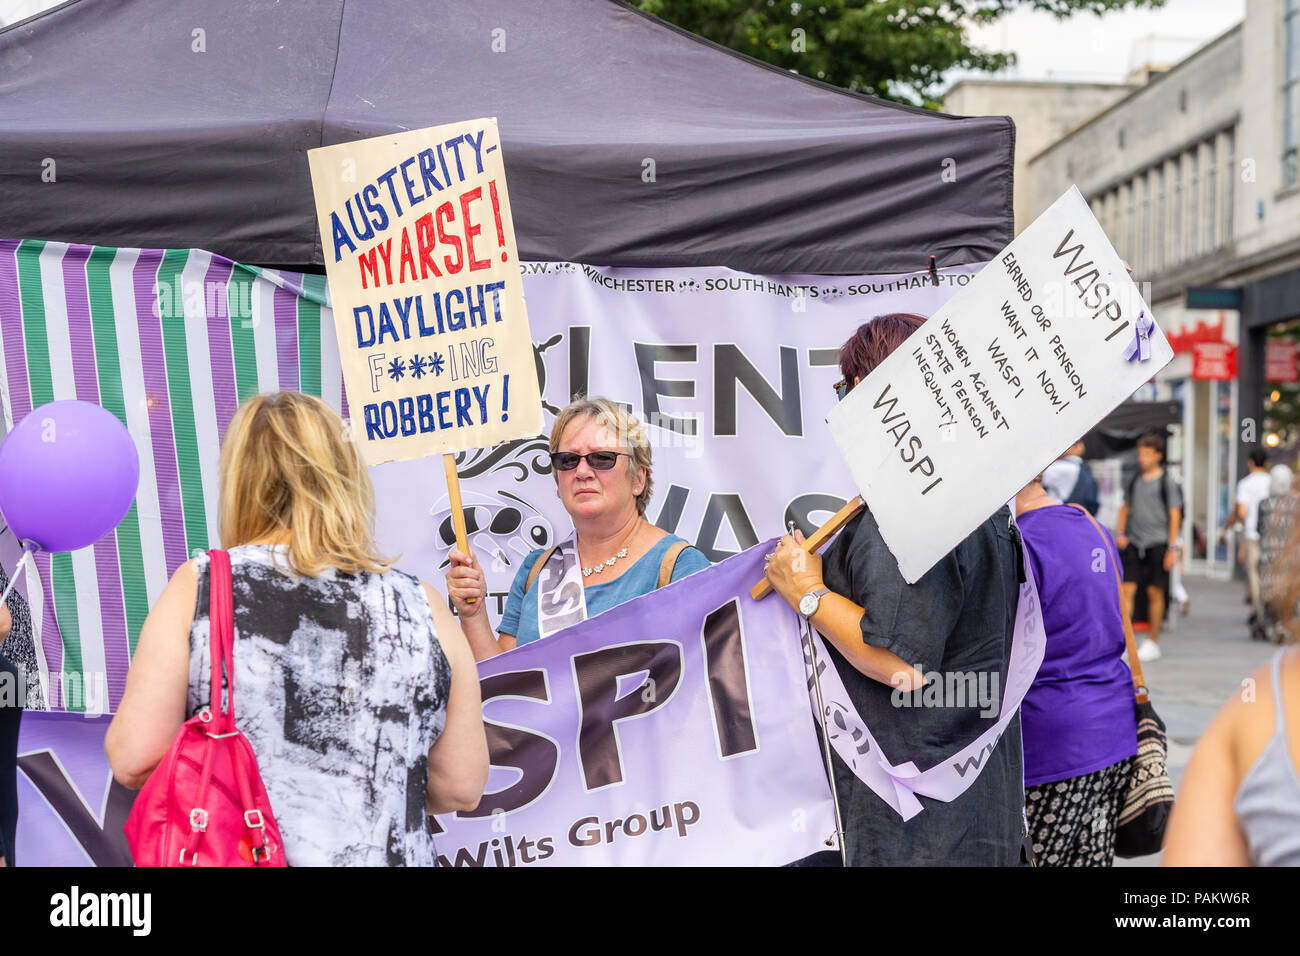 Women belonging to a WASPI campaign group  holding a protest in Southampton City Centre during the summer 2018, England, UK - Stock Image